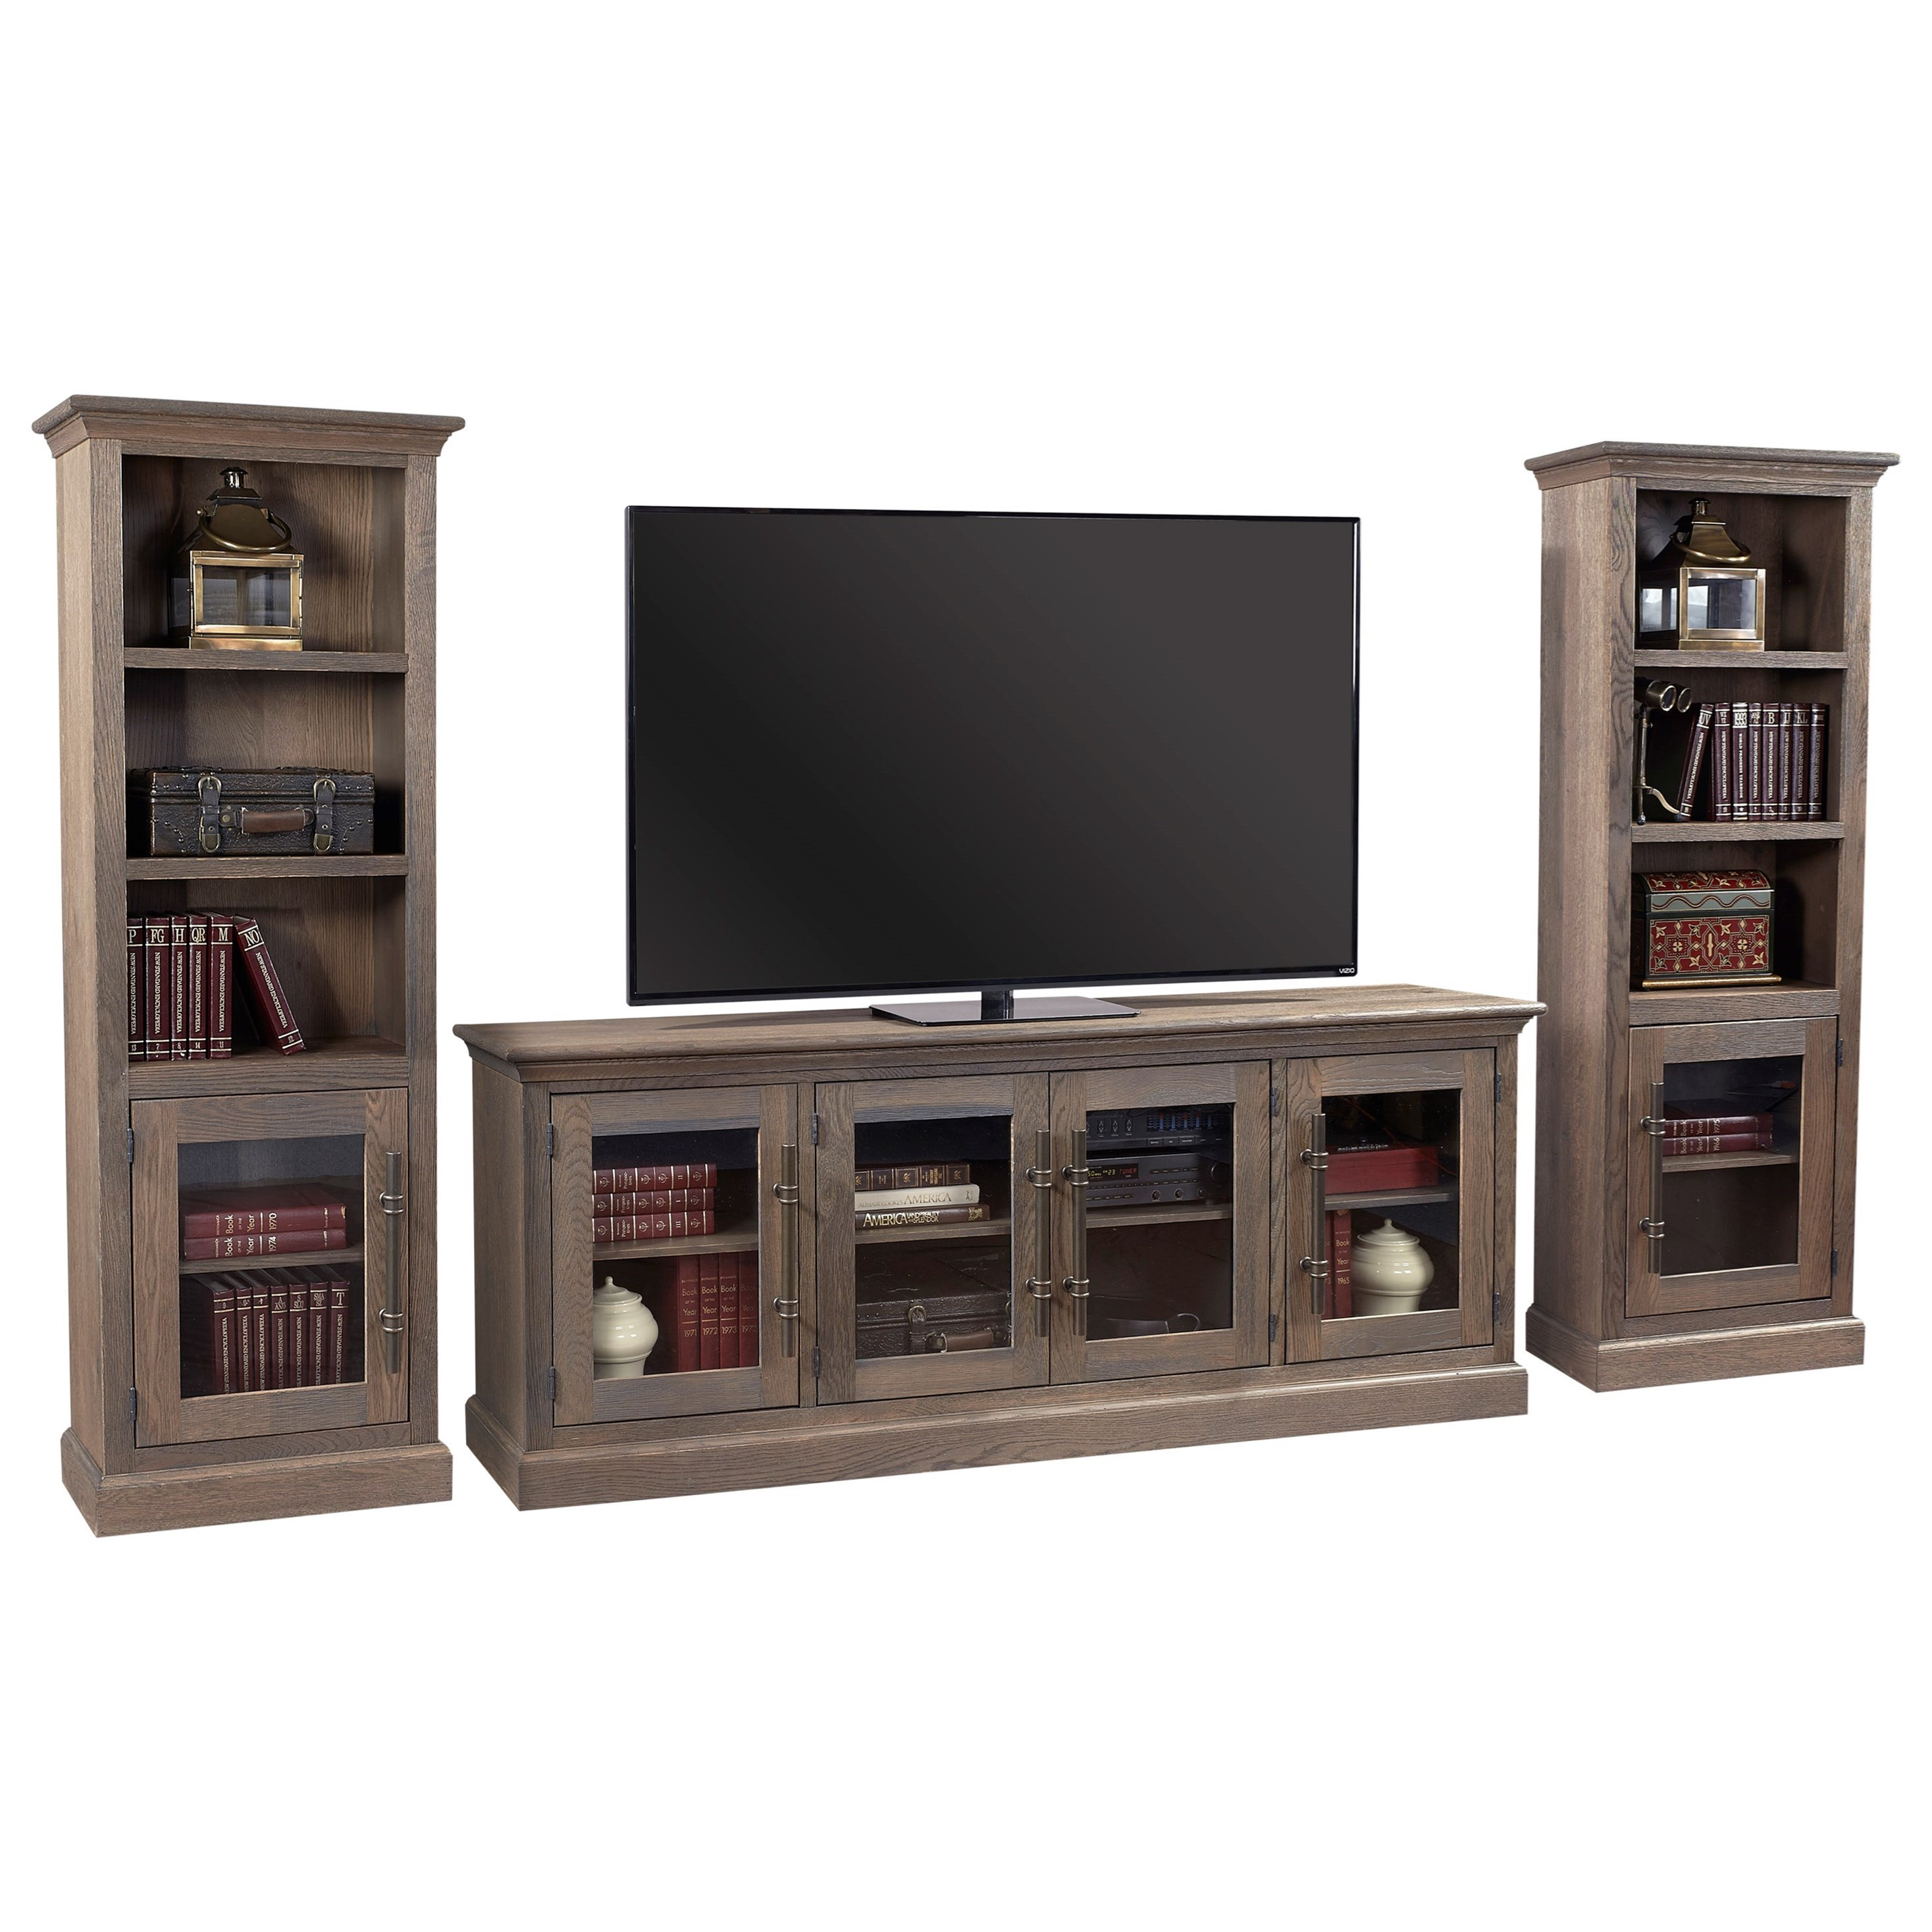 """Manchester 85"""" Entertainment Wall by Aspenhome at Walker's Furniture"""